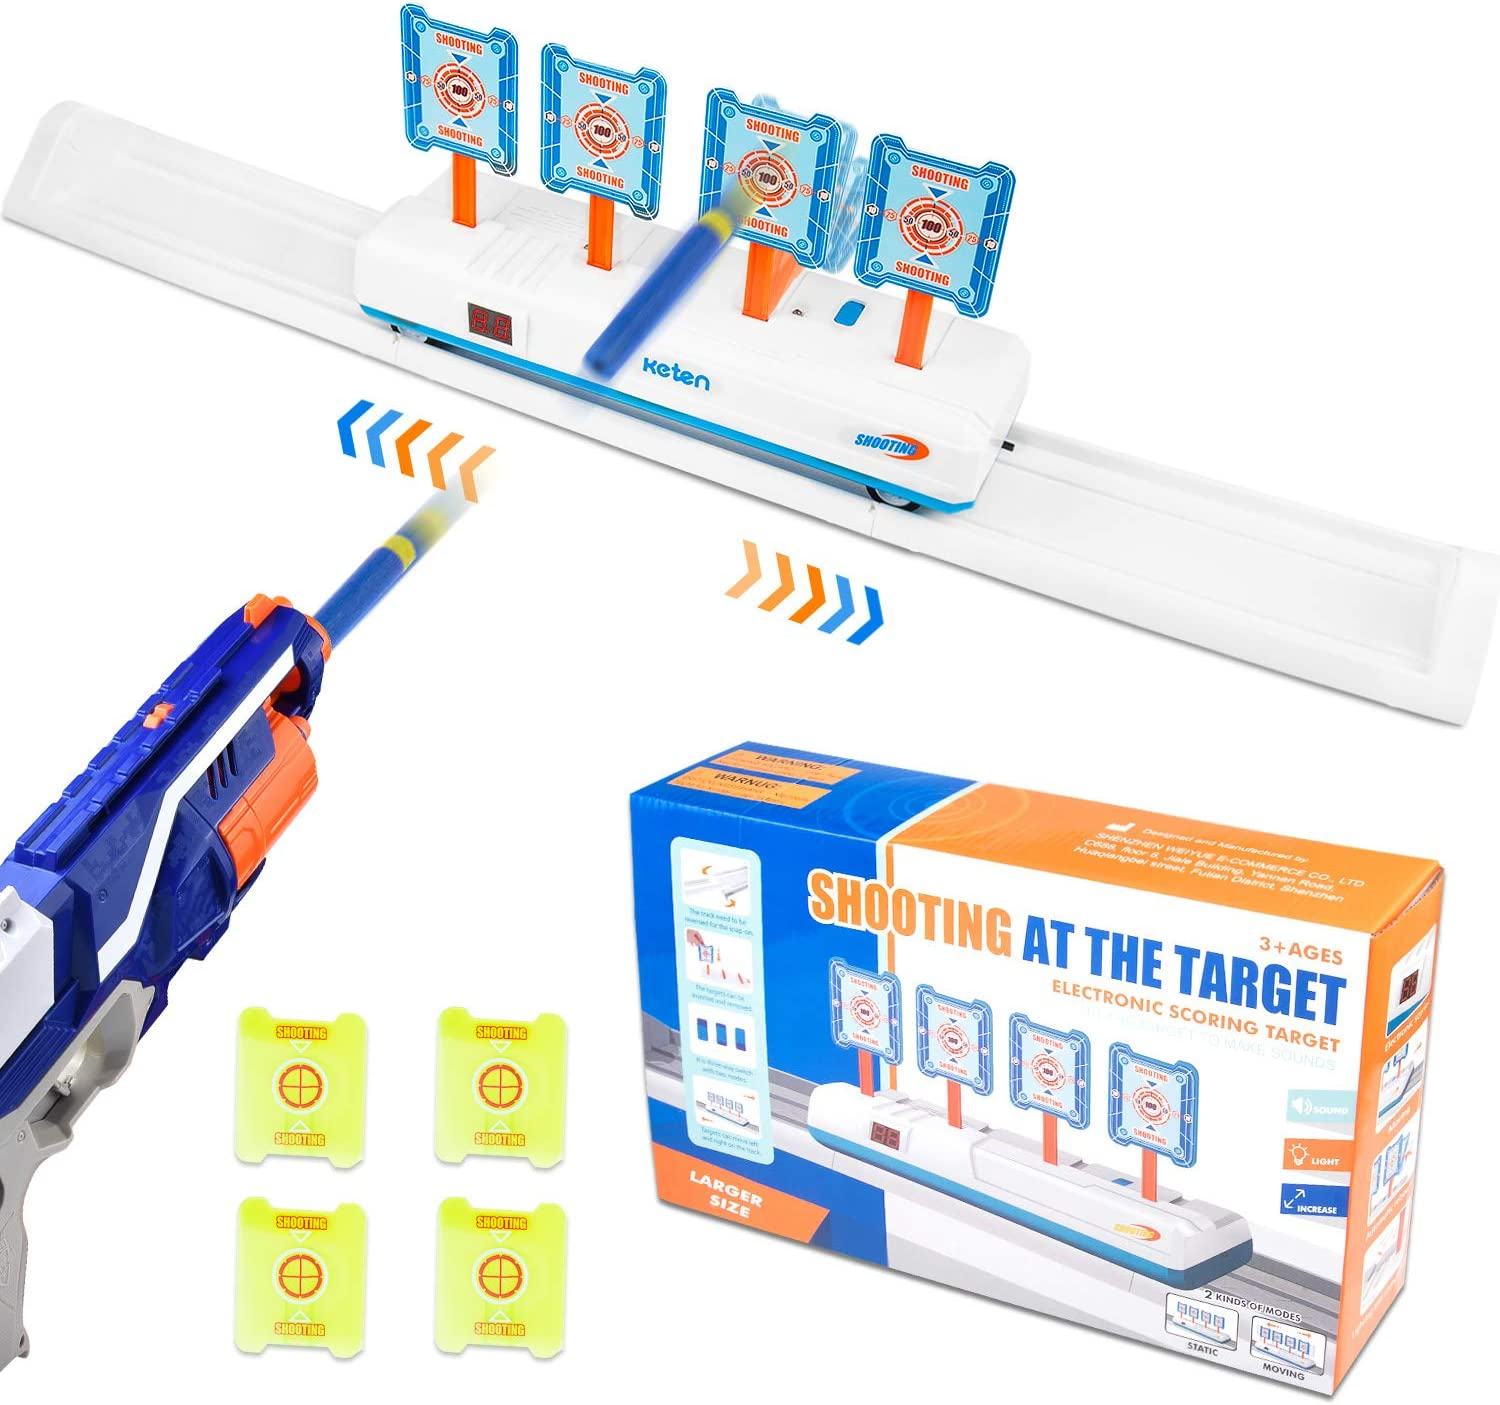 Keten Electric Digital Moving Target for Nerf Guns, 4 Targets Electronic Scoring Auto Reset Toy with Light Sound Effect for Nerf Blaster Elite/Mega/Rival Serie, Ideal Gift Toys for Kids, Boys & Girls